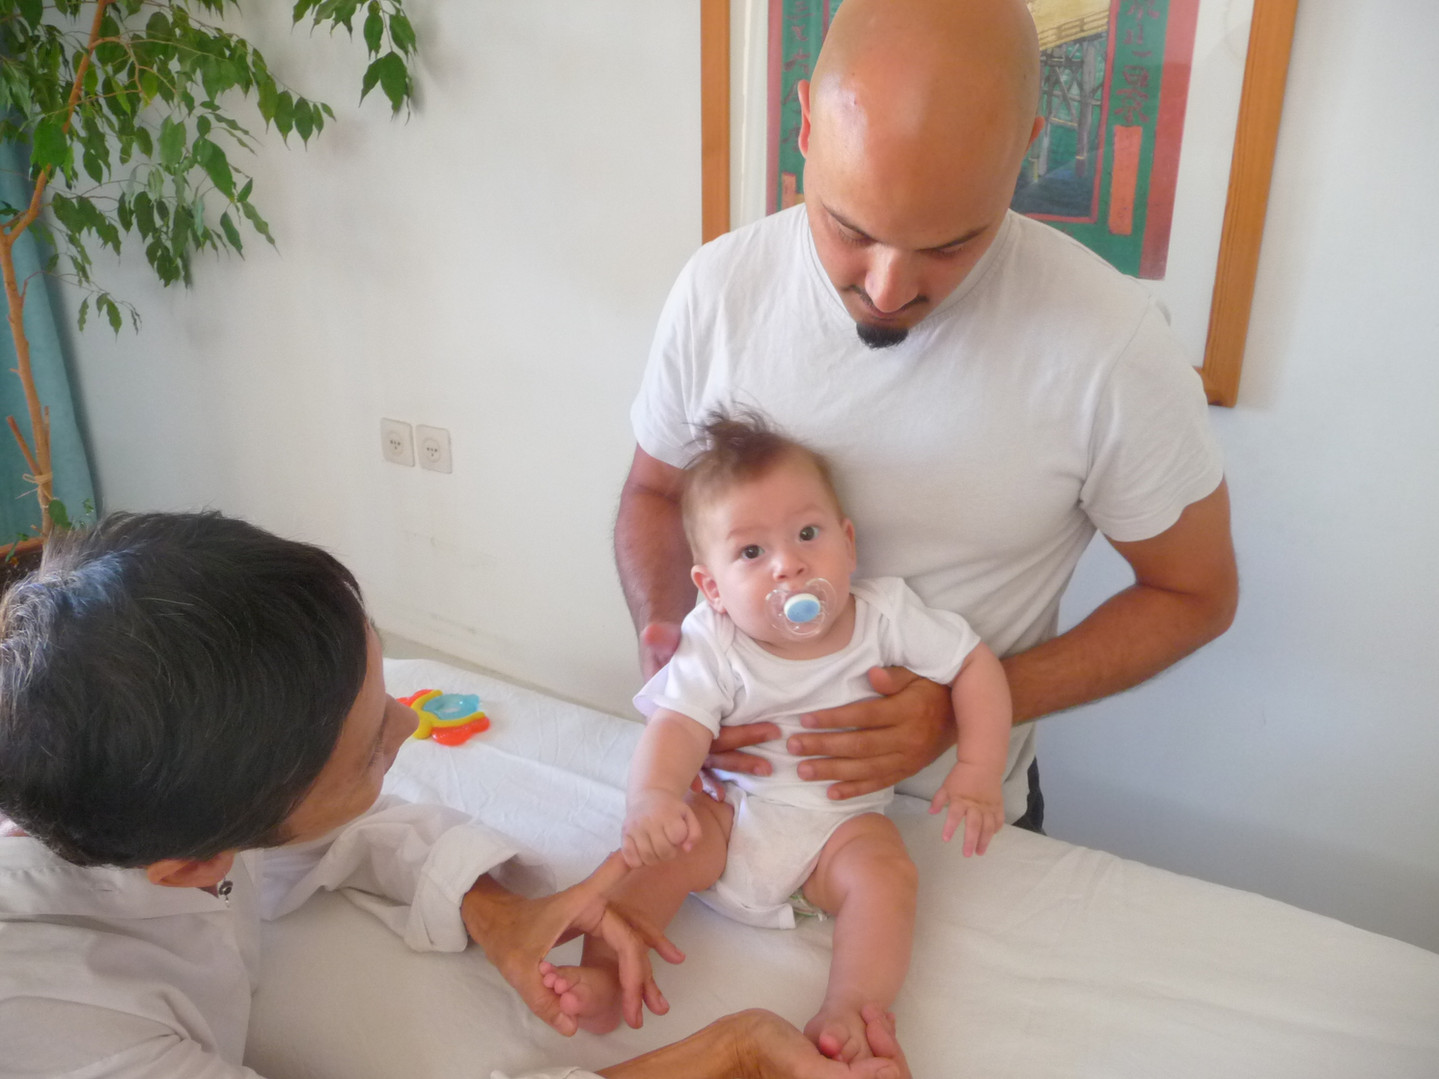 Osteopathic check for baby